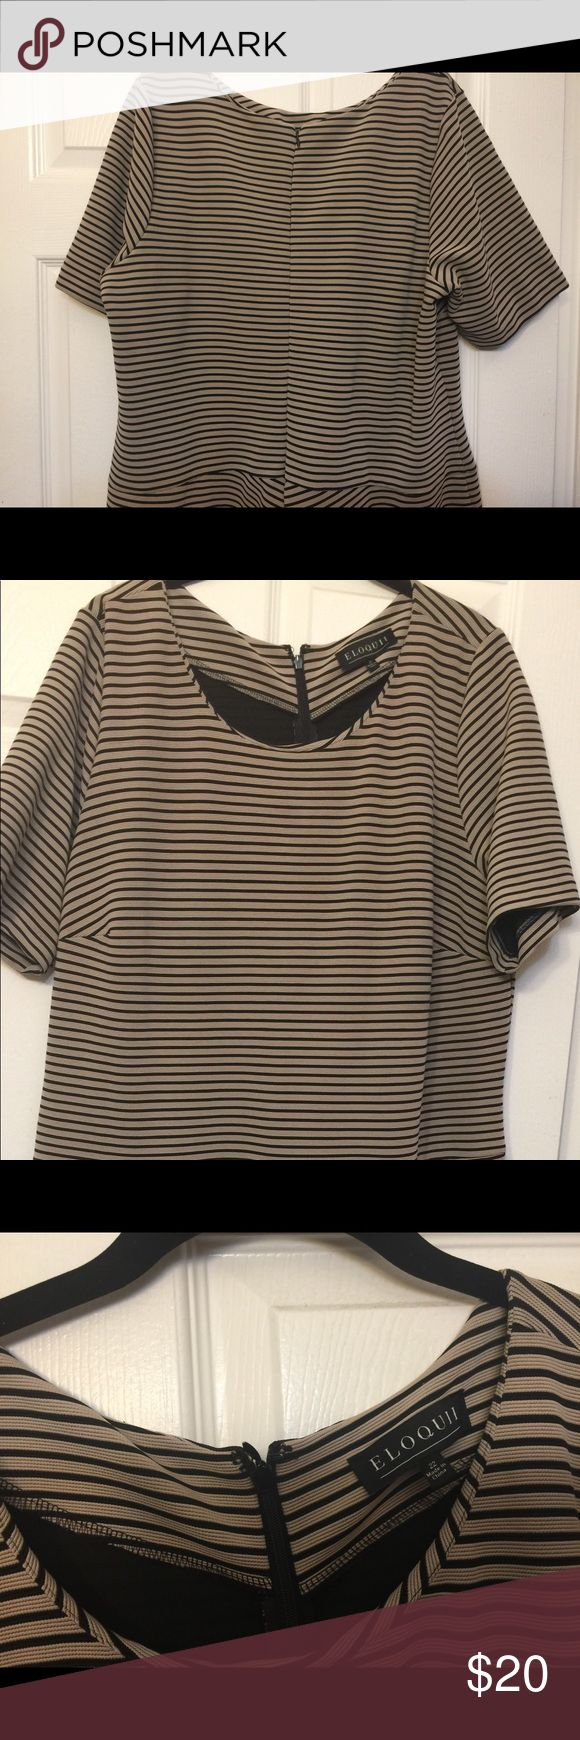 Eloquii size 22 dress Eloquii tan and black textured stripe dress in size 22. Style: fit and flare Eloquii Dresses